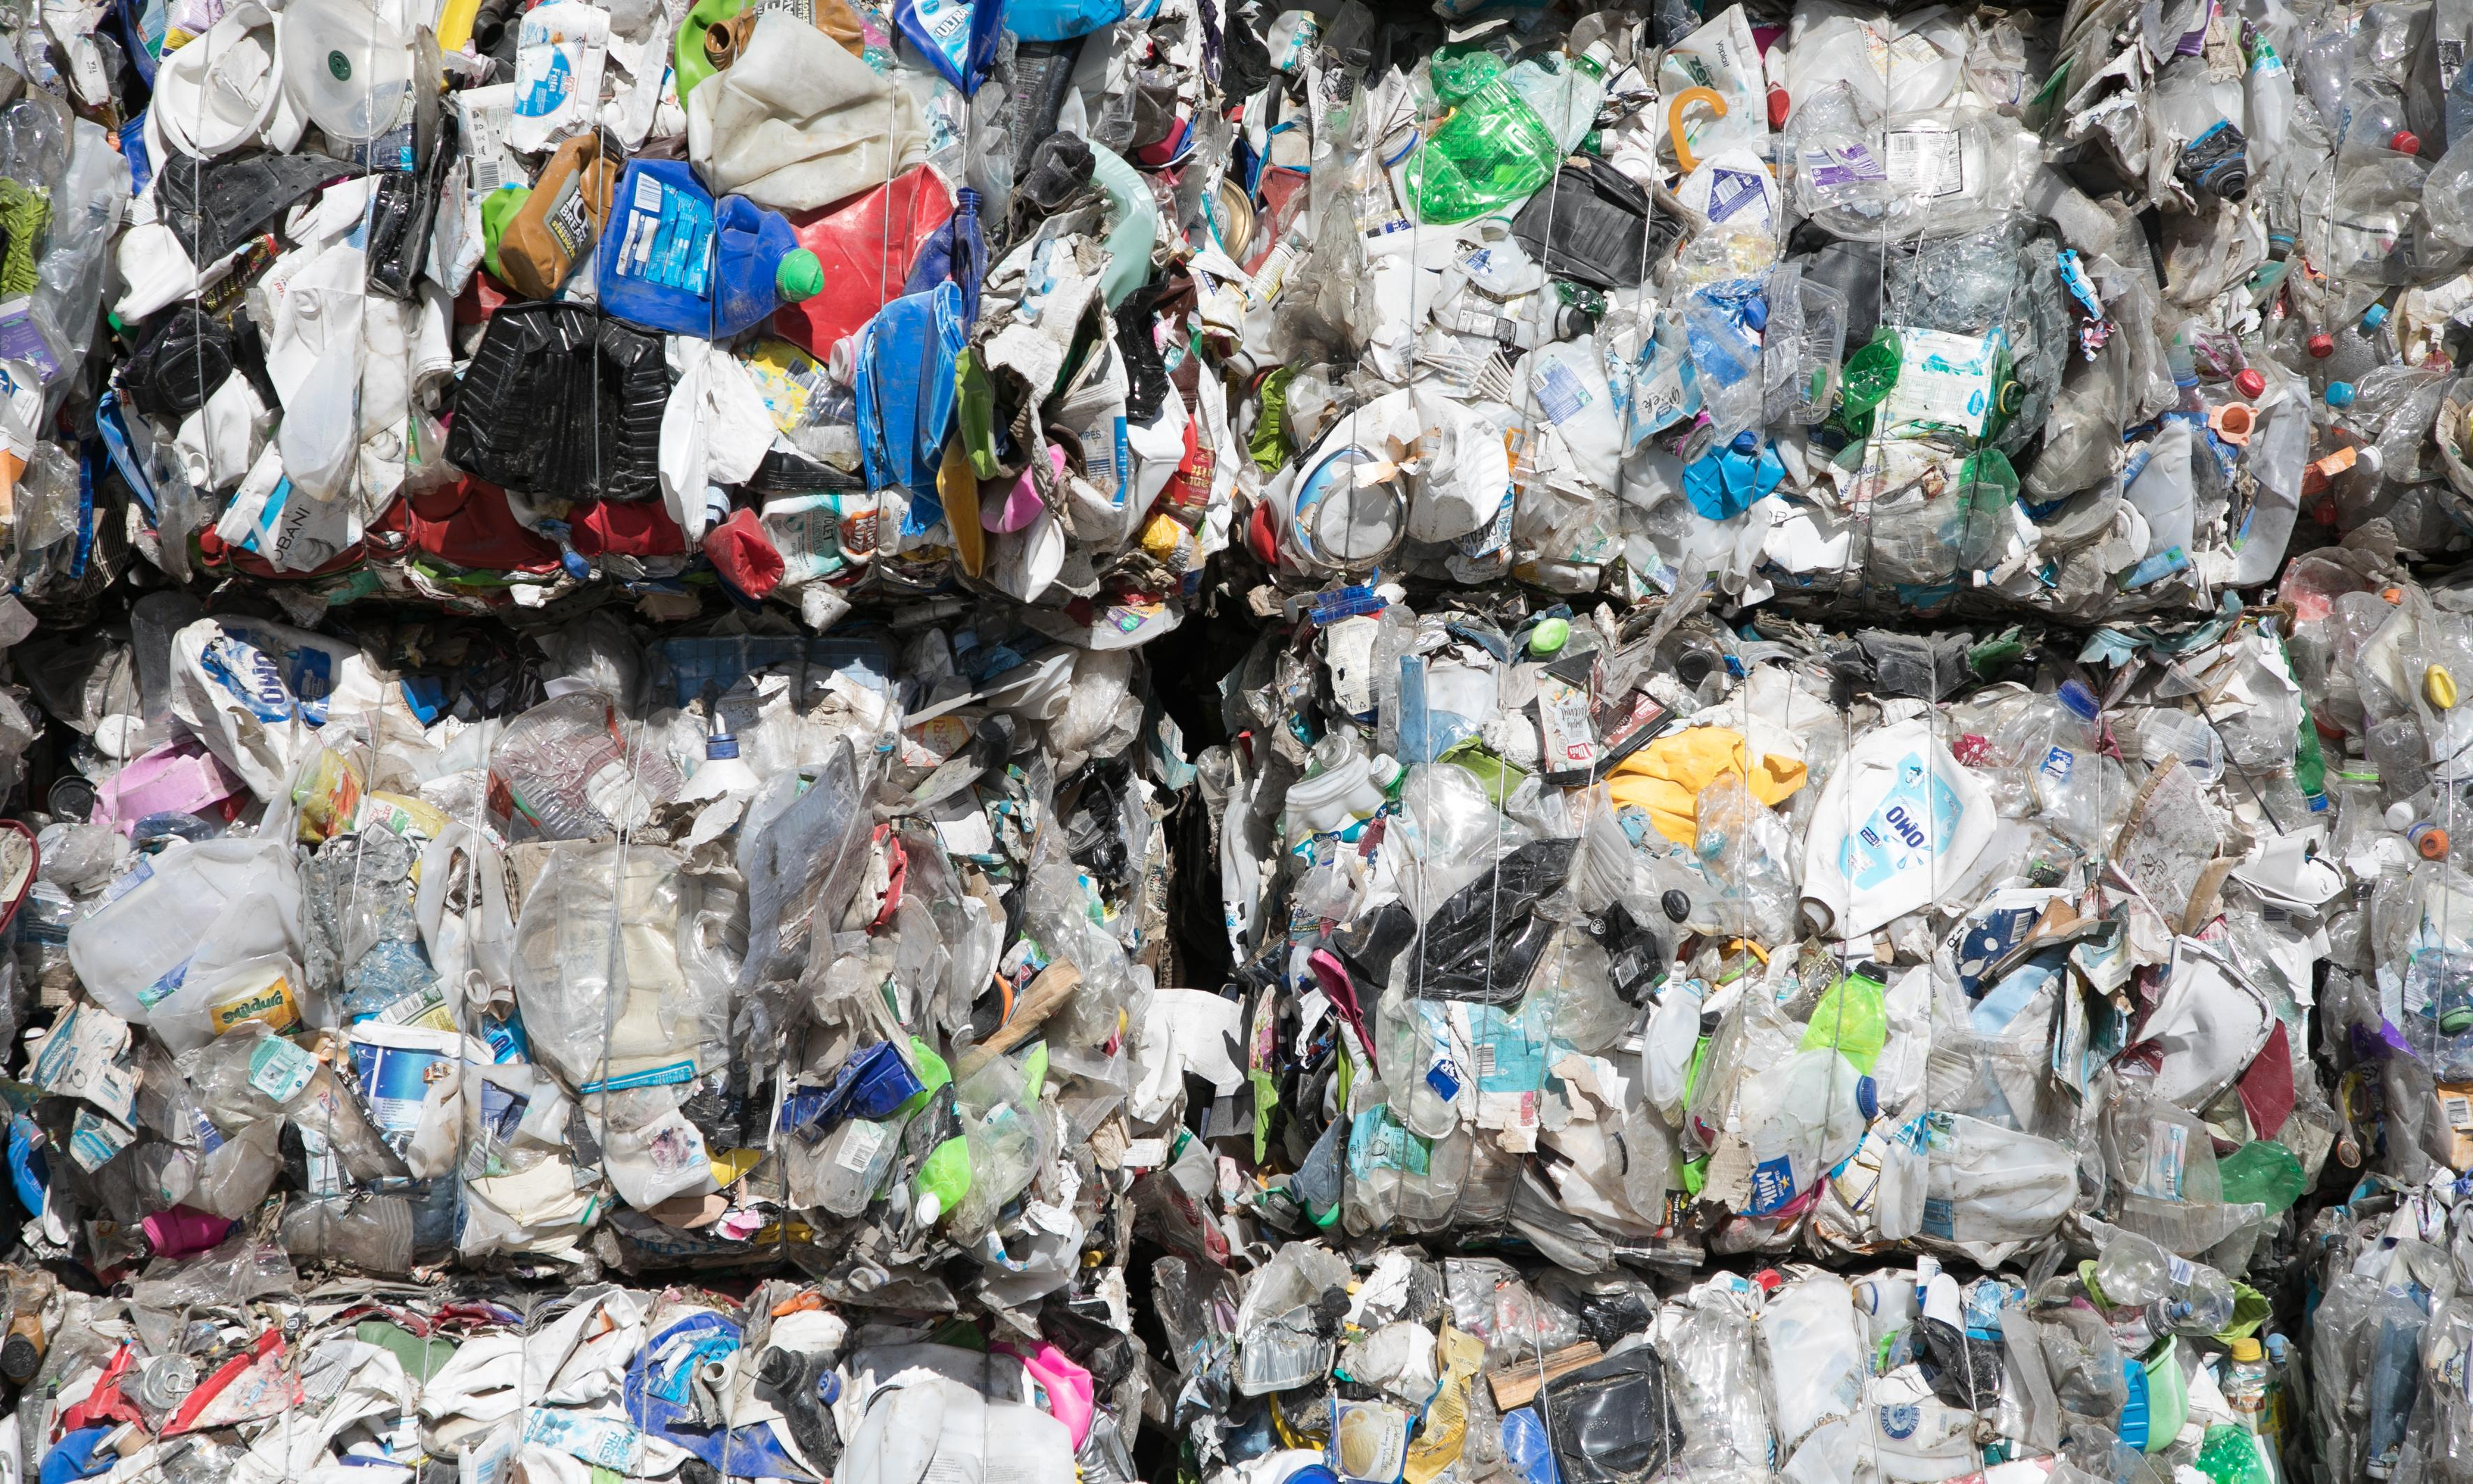 SKM to be wound up and 280,000 tonnes of recycling could end up in landfill